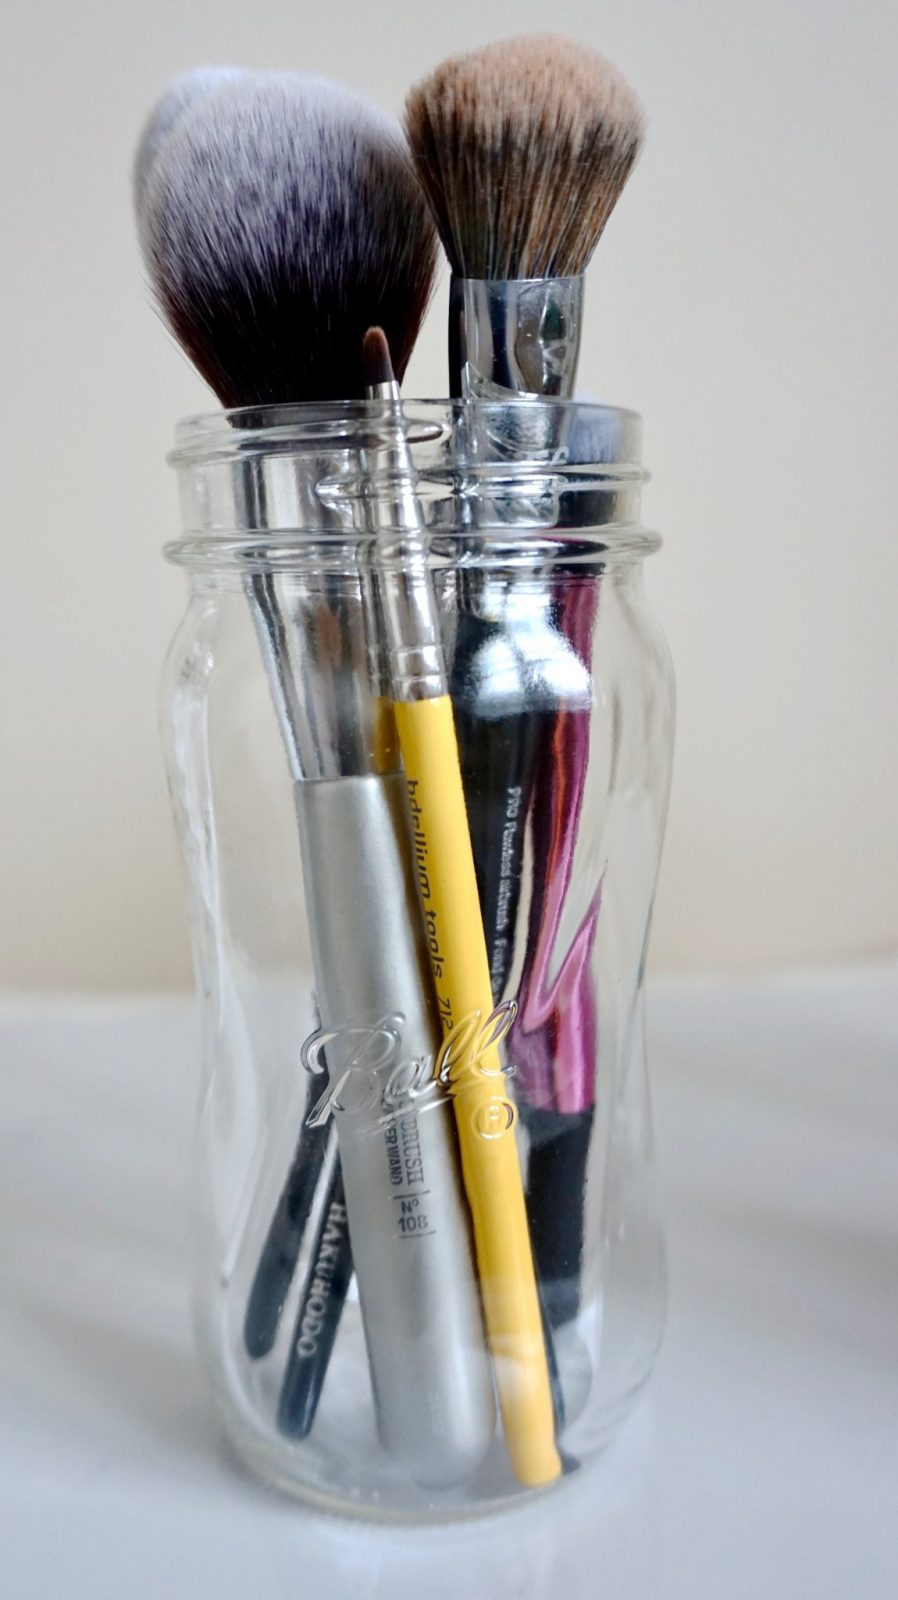 Storing makeup brushes in mason jars